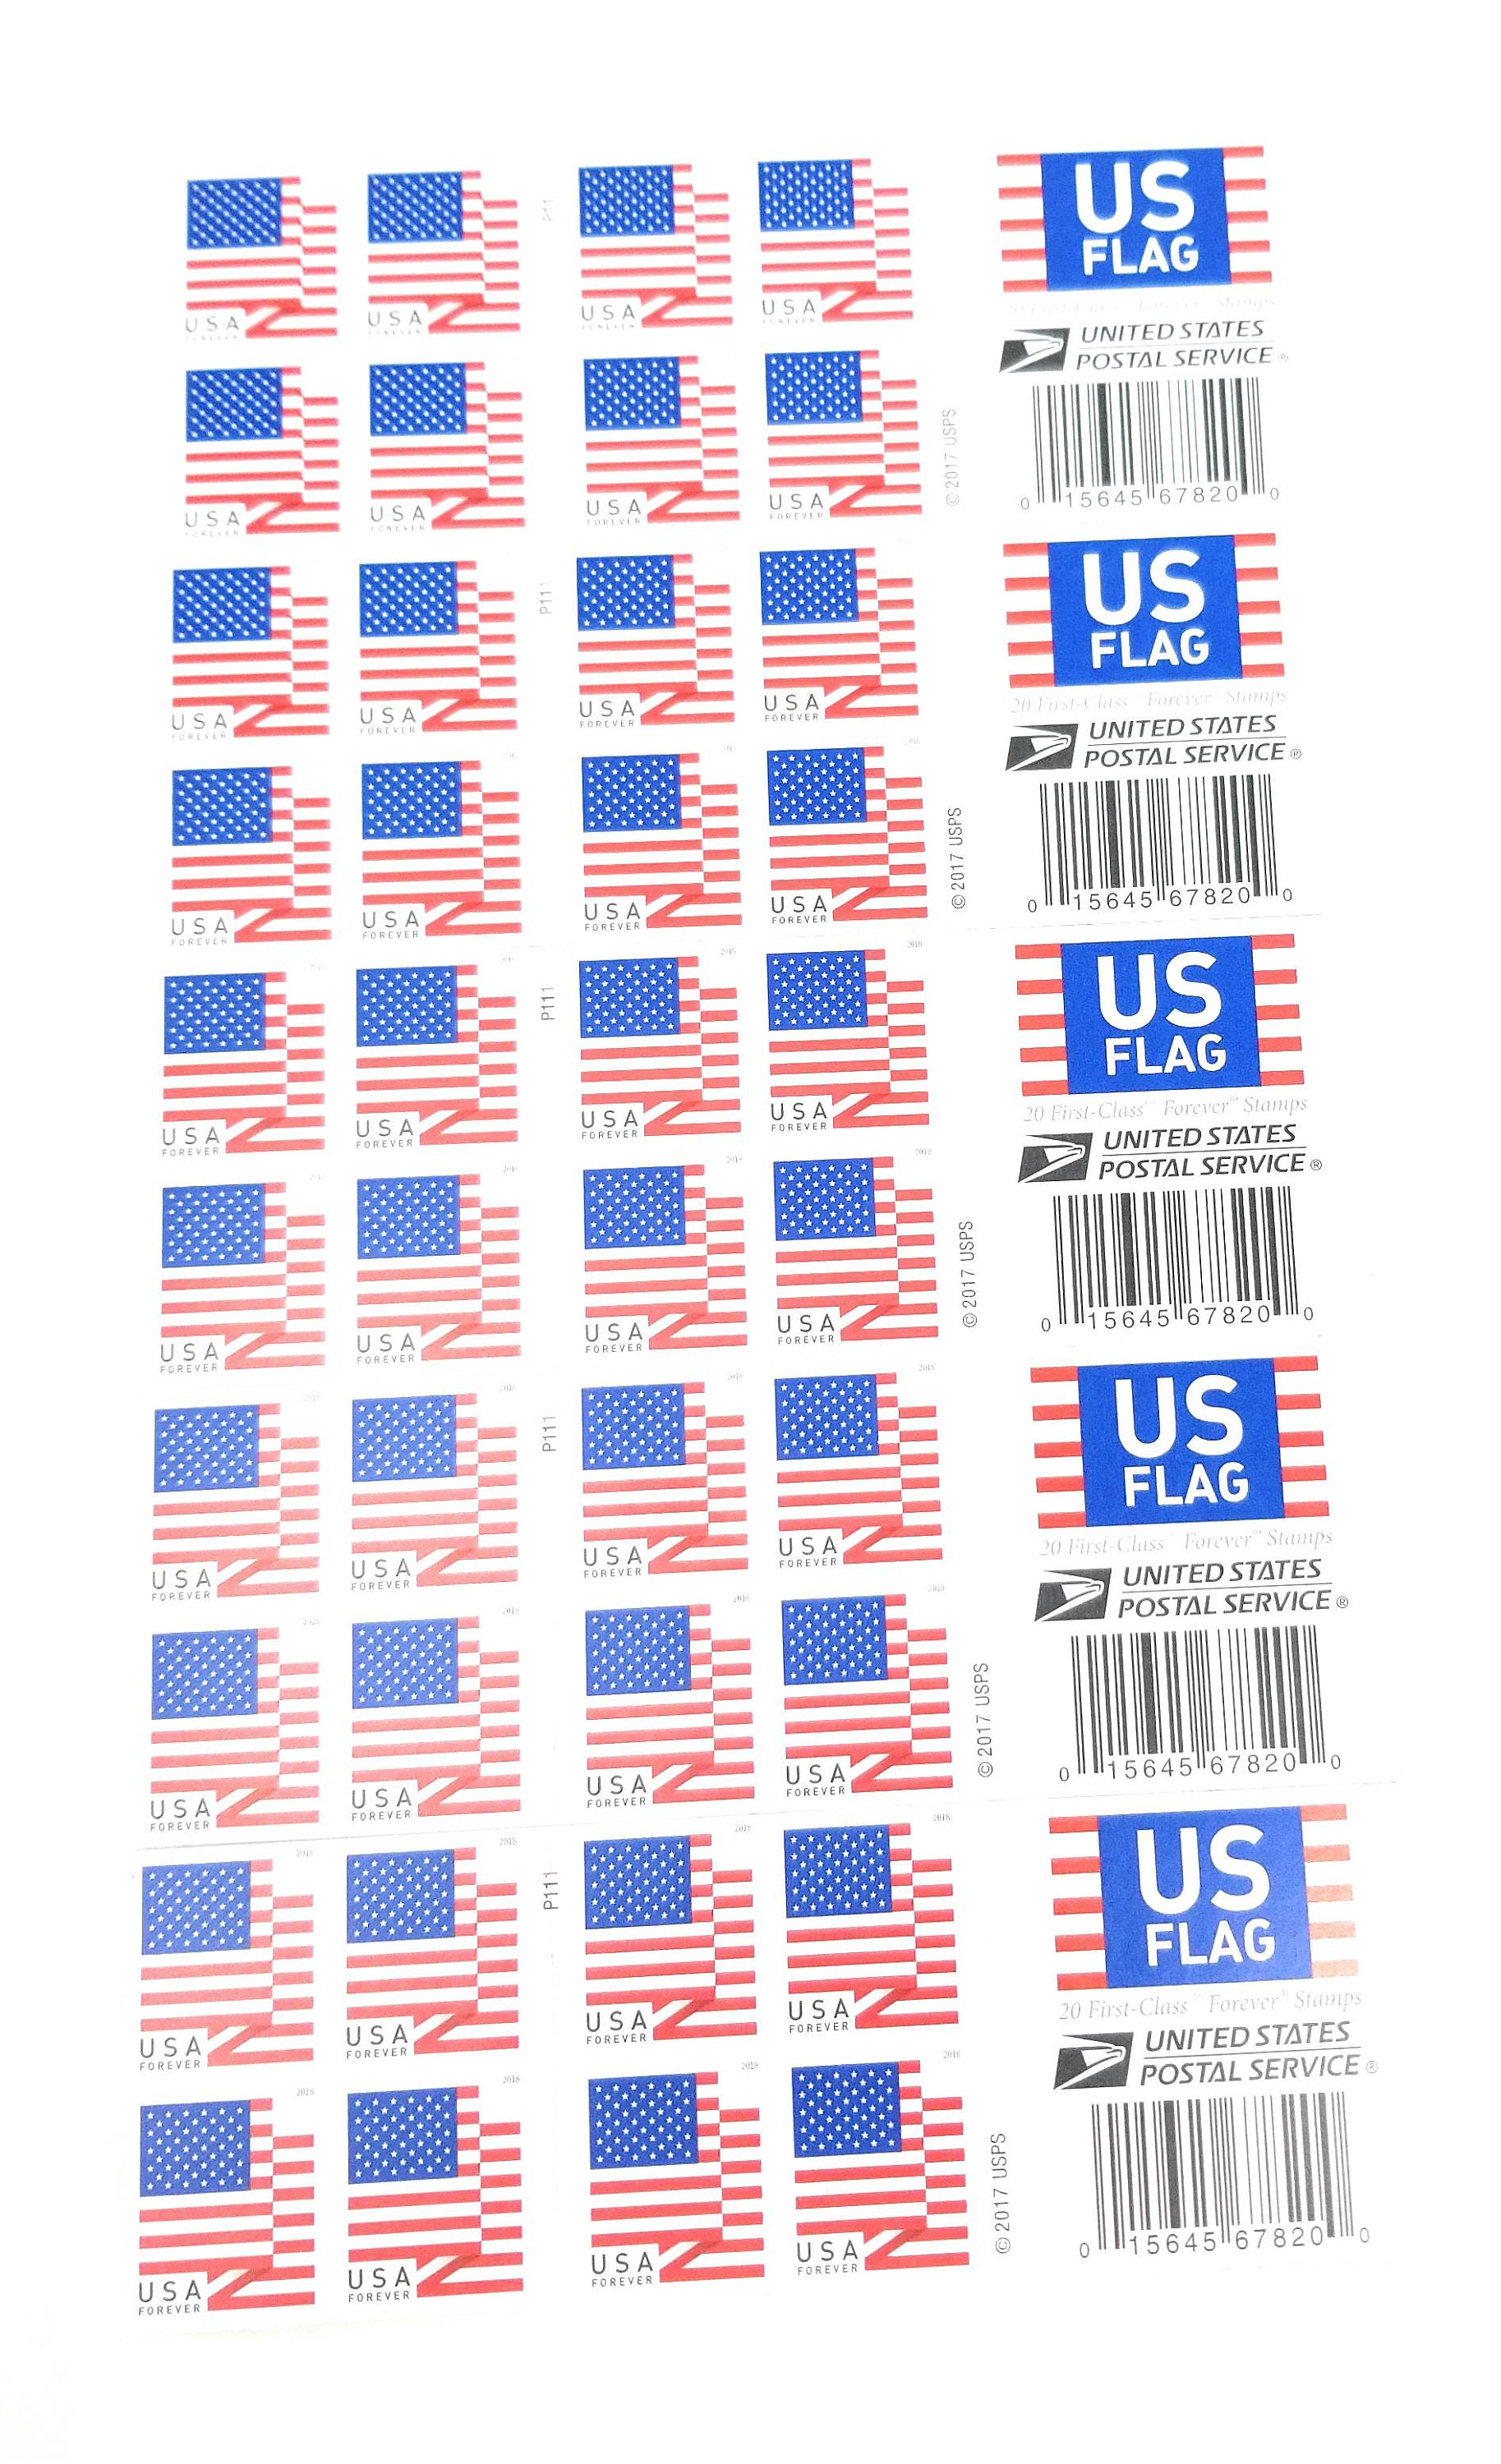 100 Forever First-Class Postage Stamps by USPS Post Office